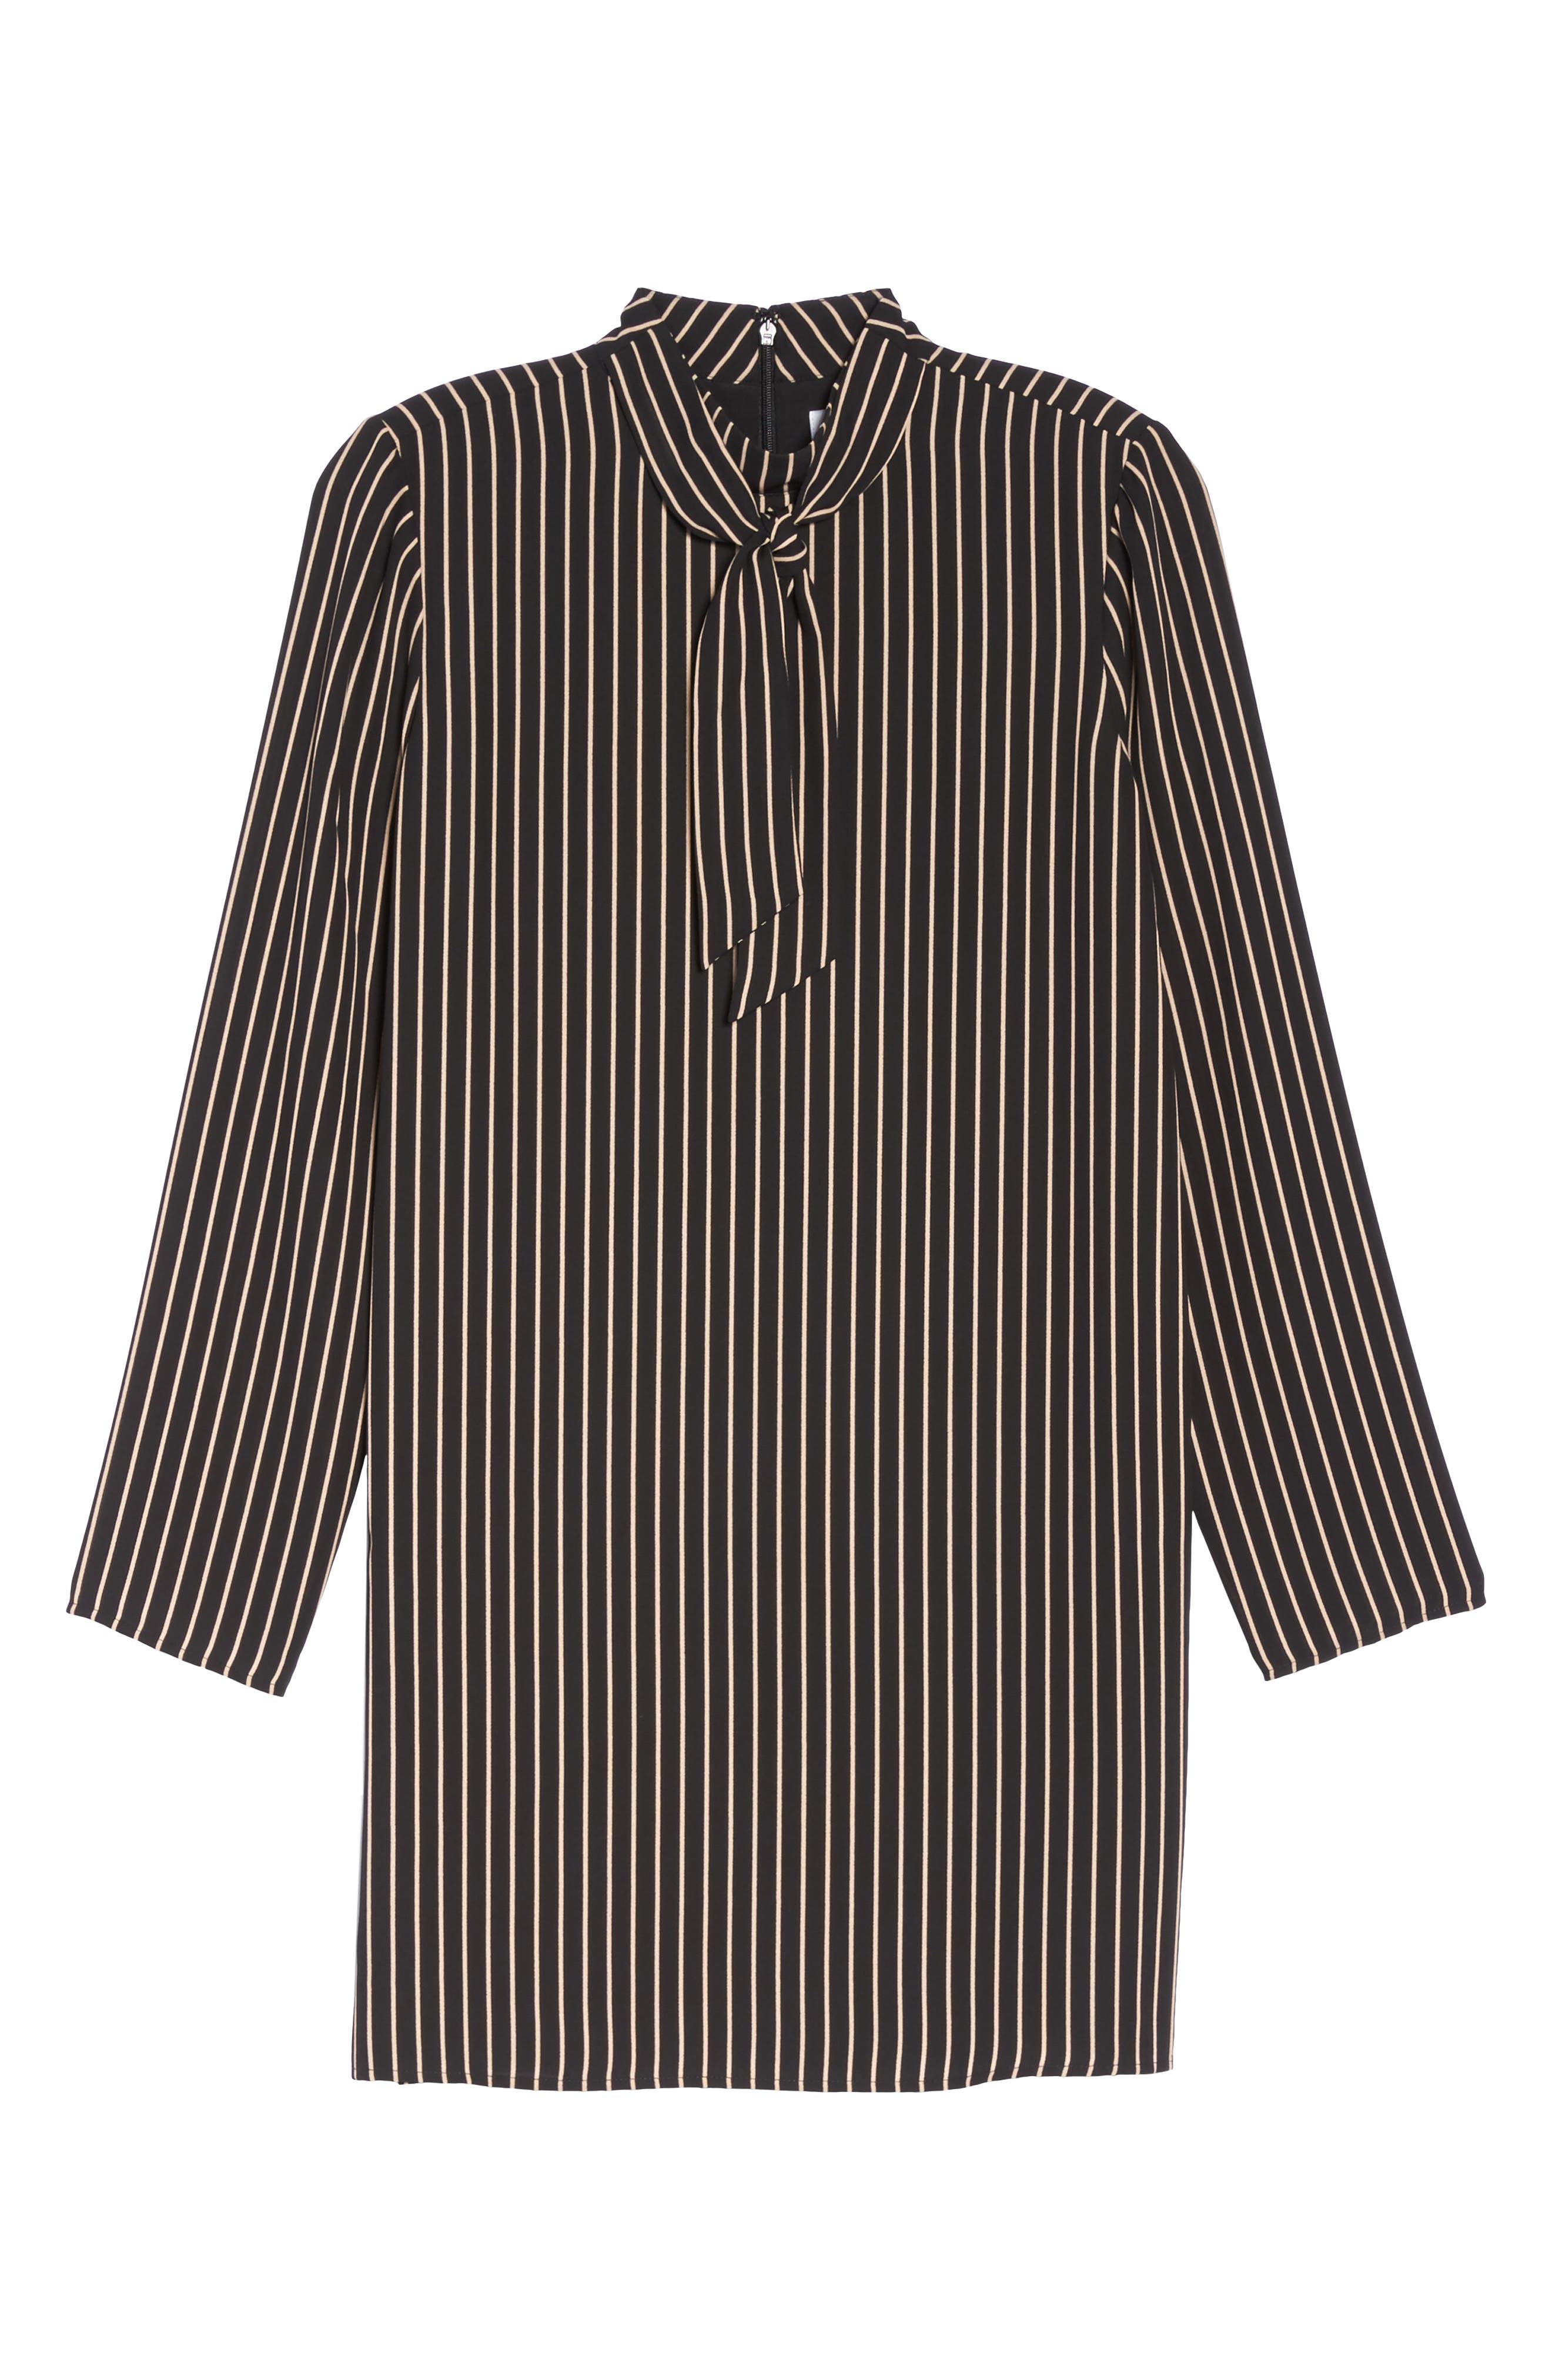 She-E-O Shift Dress,                             Alternate thumbnail 6, color,                             Black/ Tan Stripe